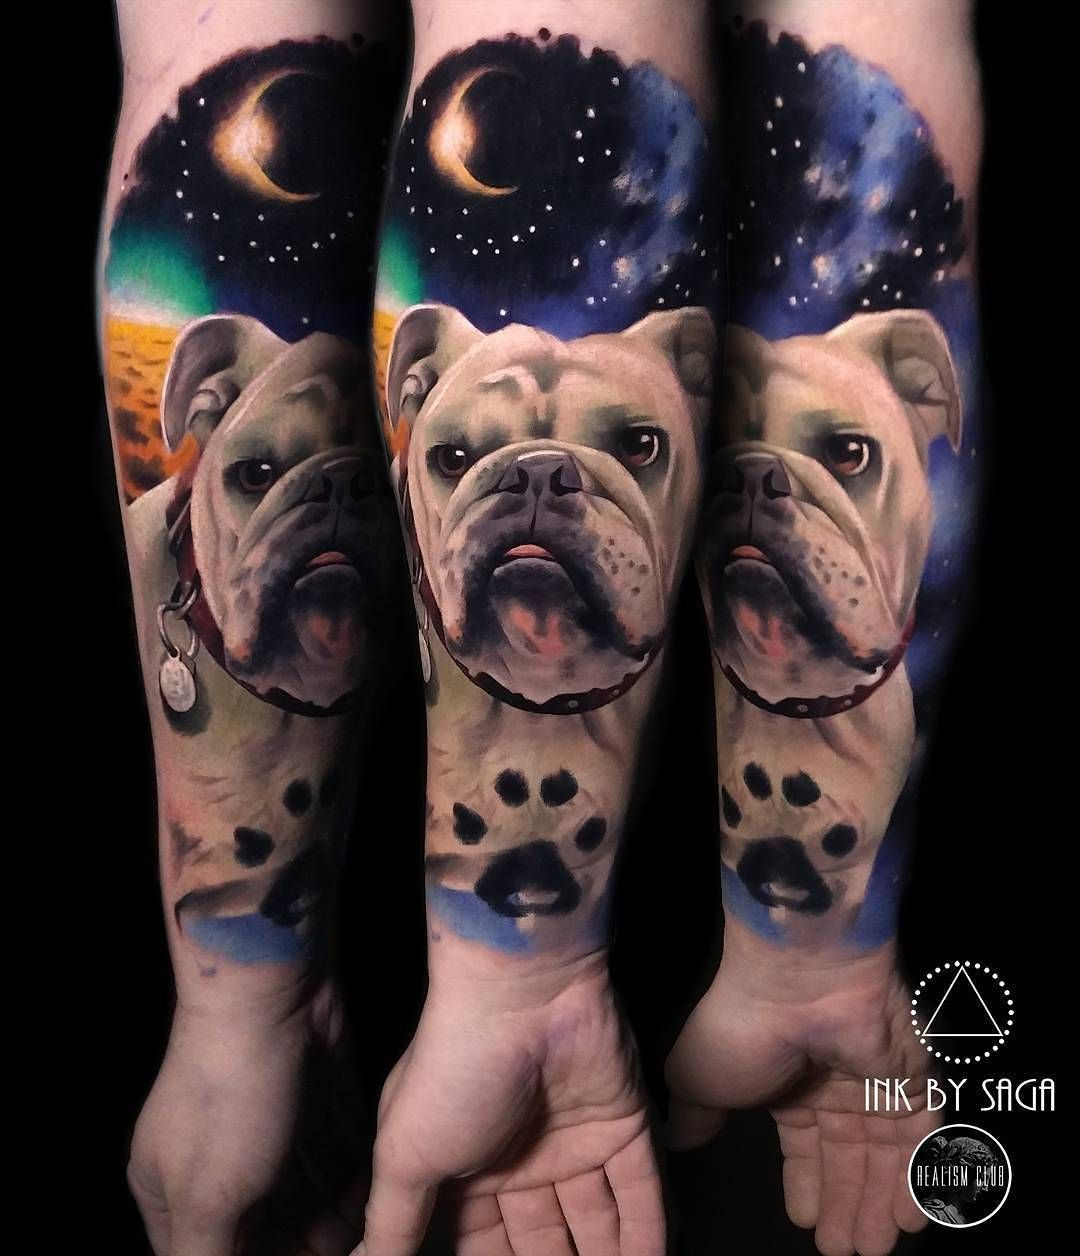 Space Bulldog Tattoo By Inkbysaga At Boss Tattoos In Calgary